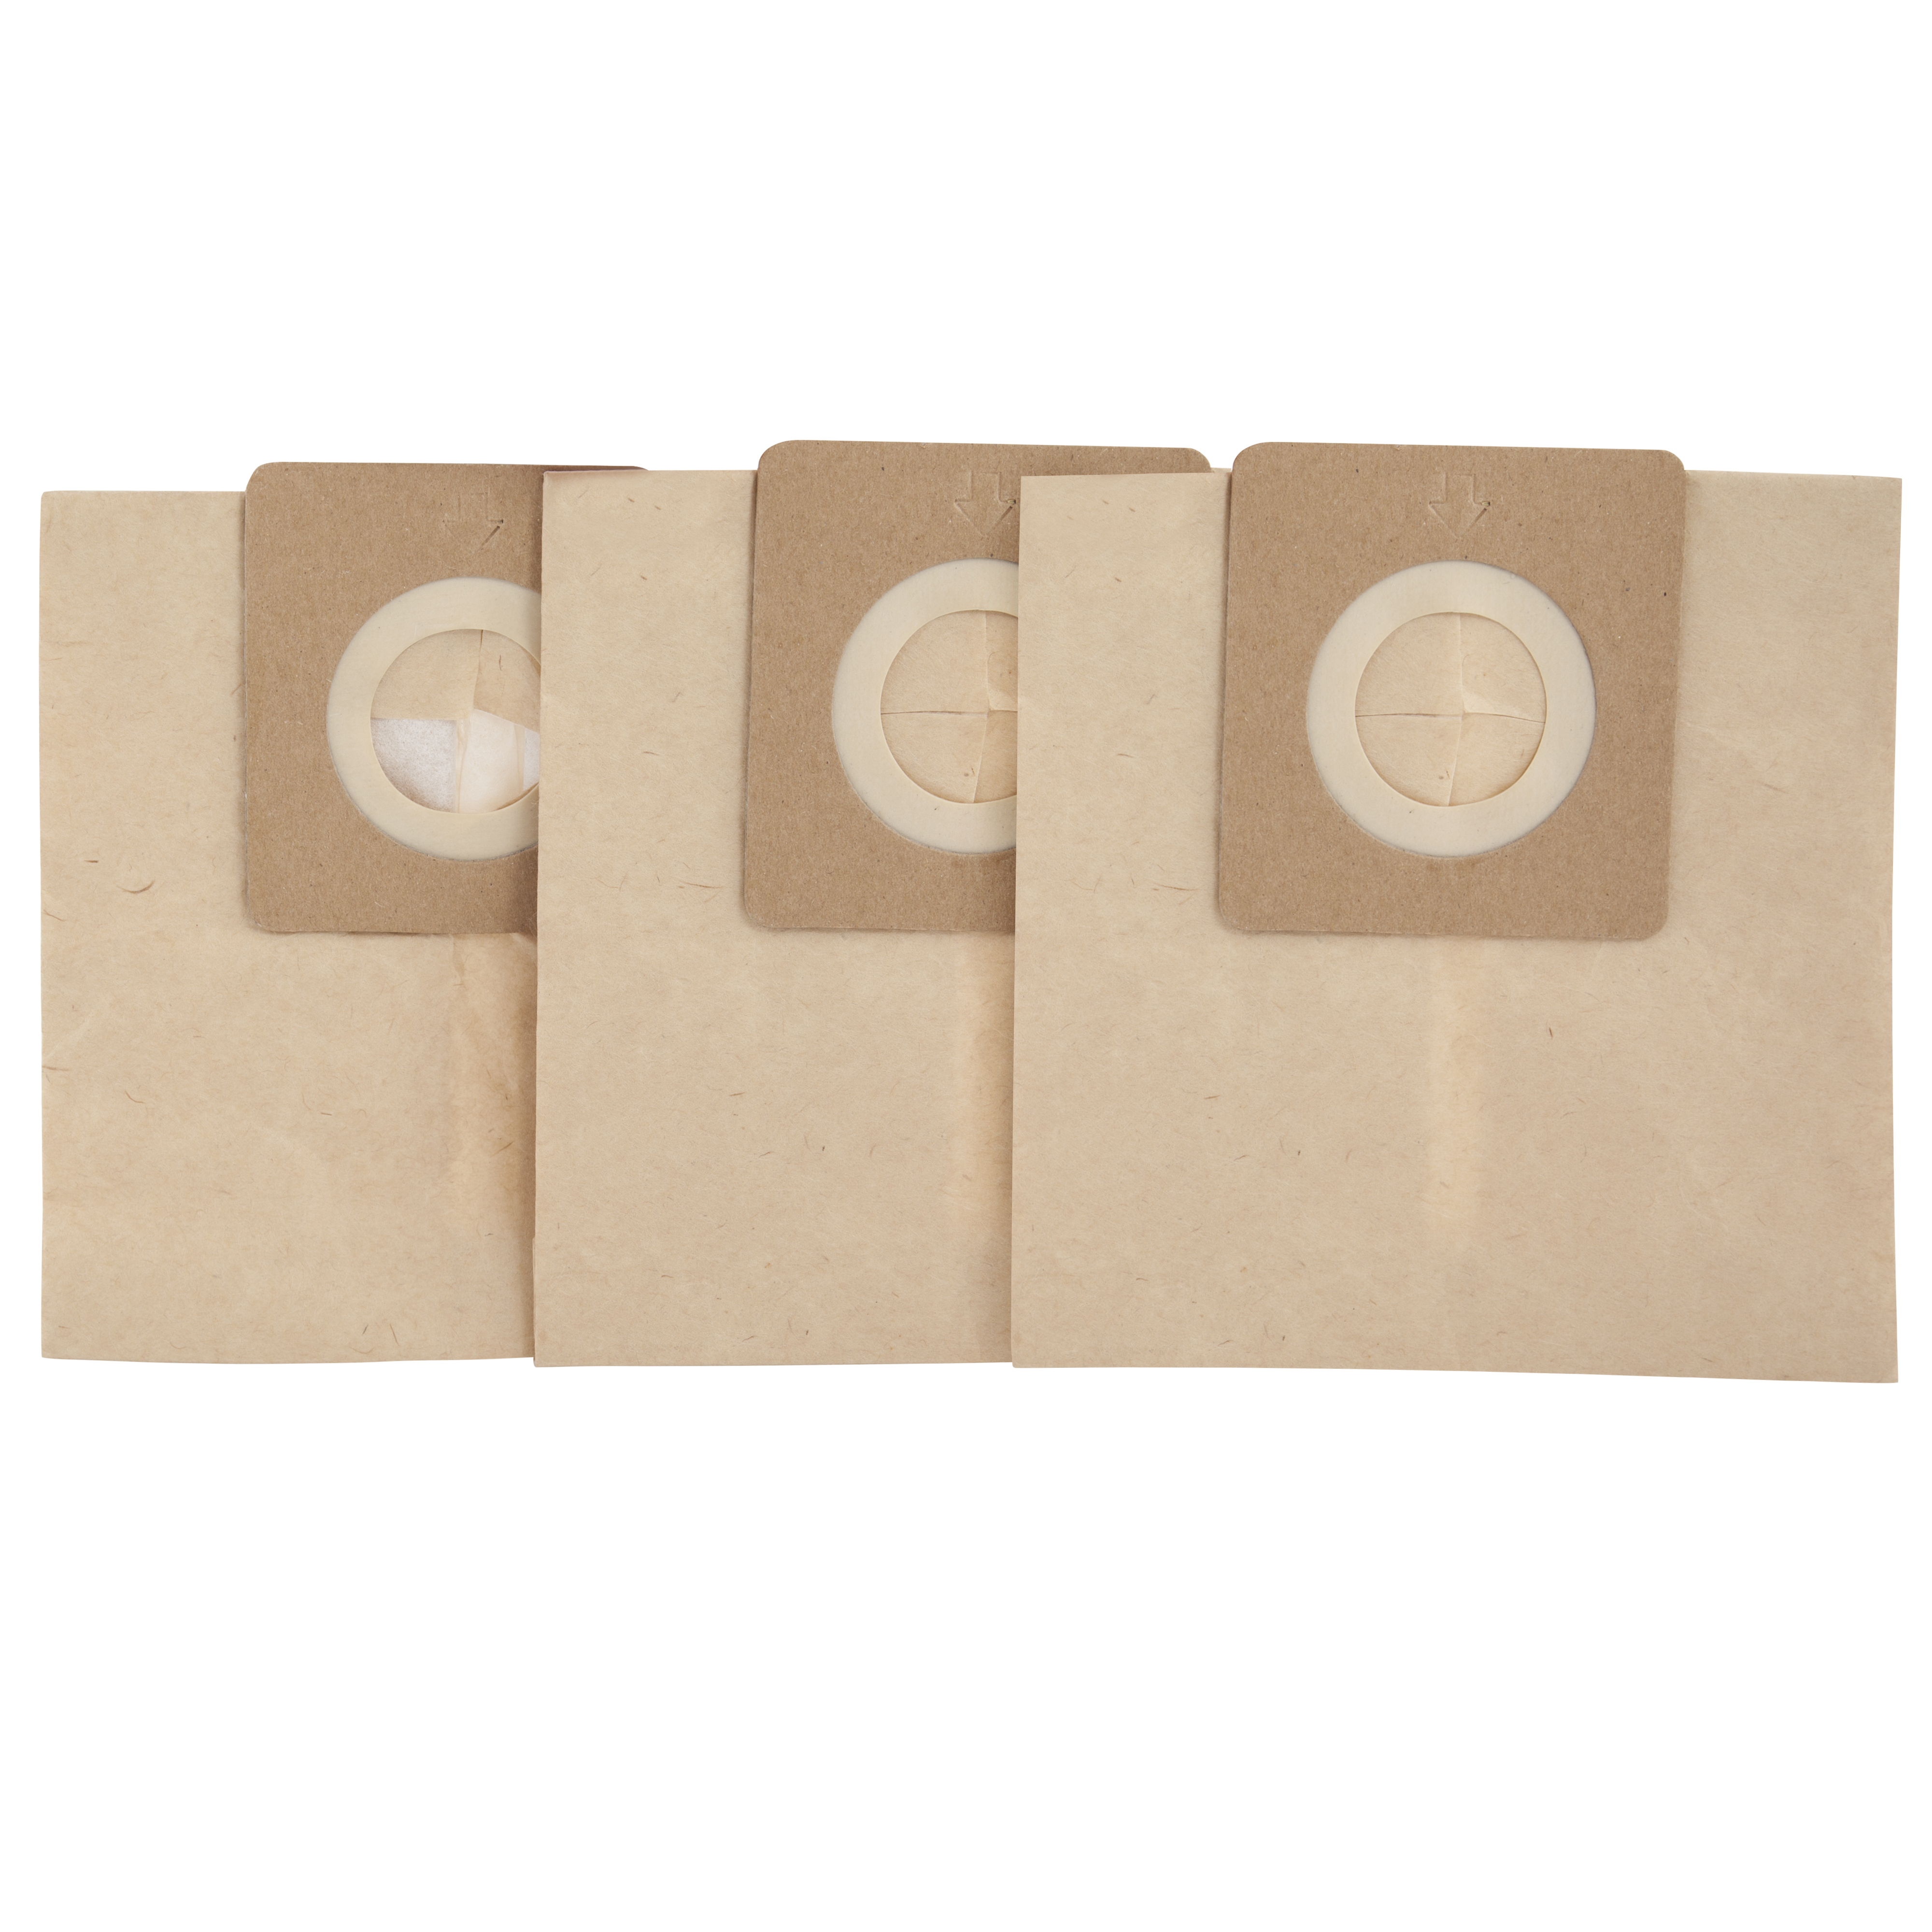 Pifco Pack Of 3 Replacement Bags No Colour